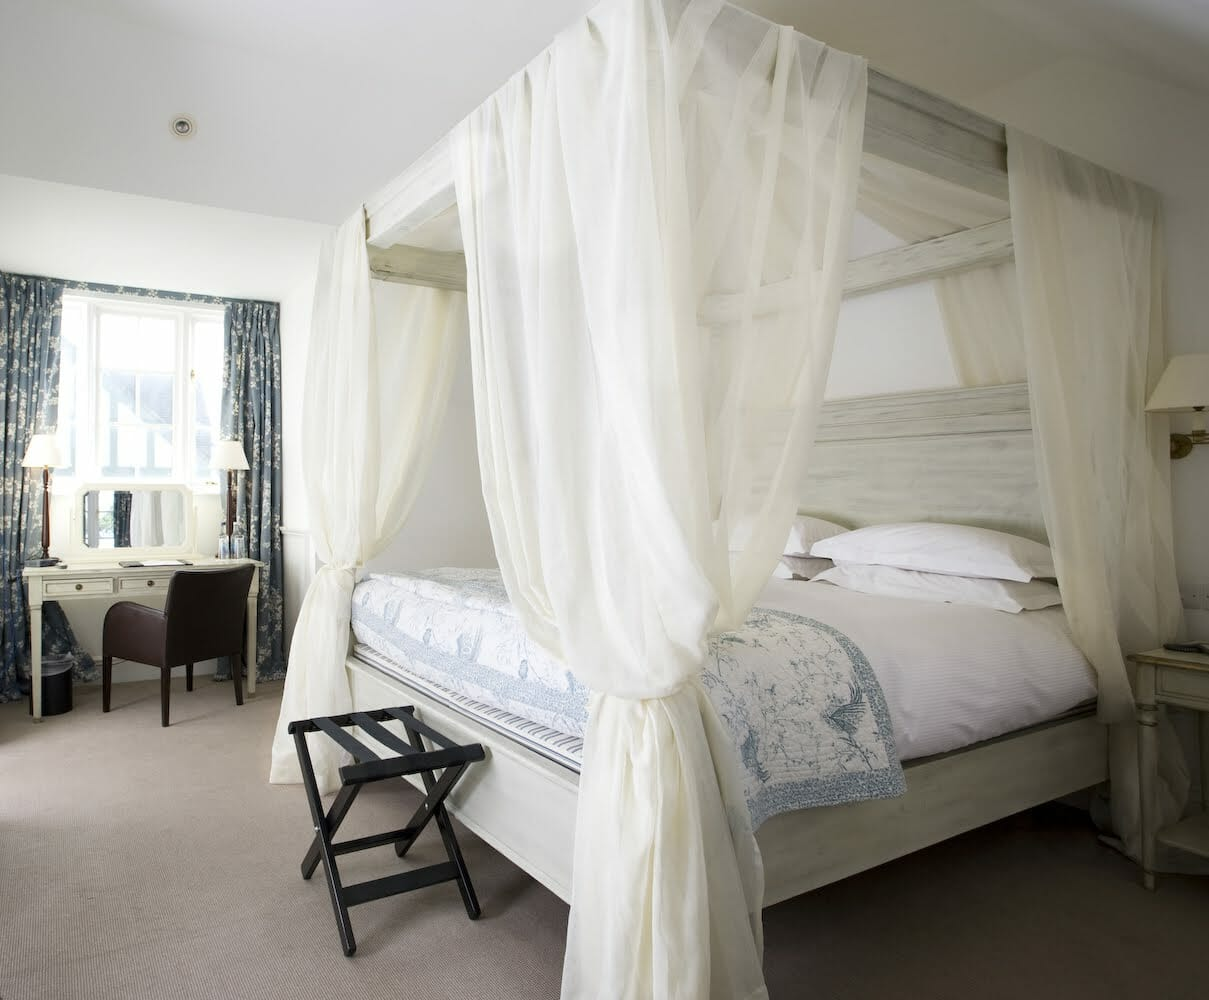 Four Poster 2 Escape to The Grange Hotel for an Intimate Country House Setting in York EAT LOVE SAVOR International luxury lifestyle magazine and bookazines